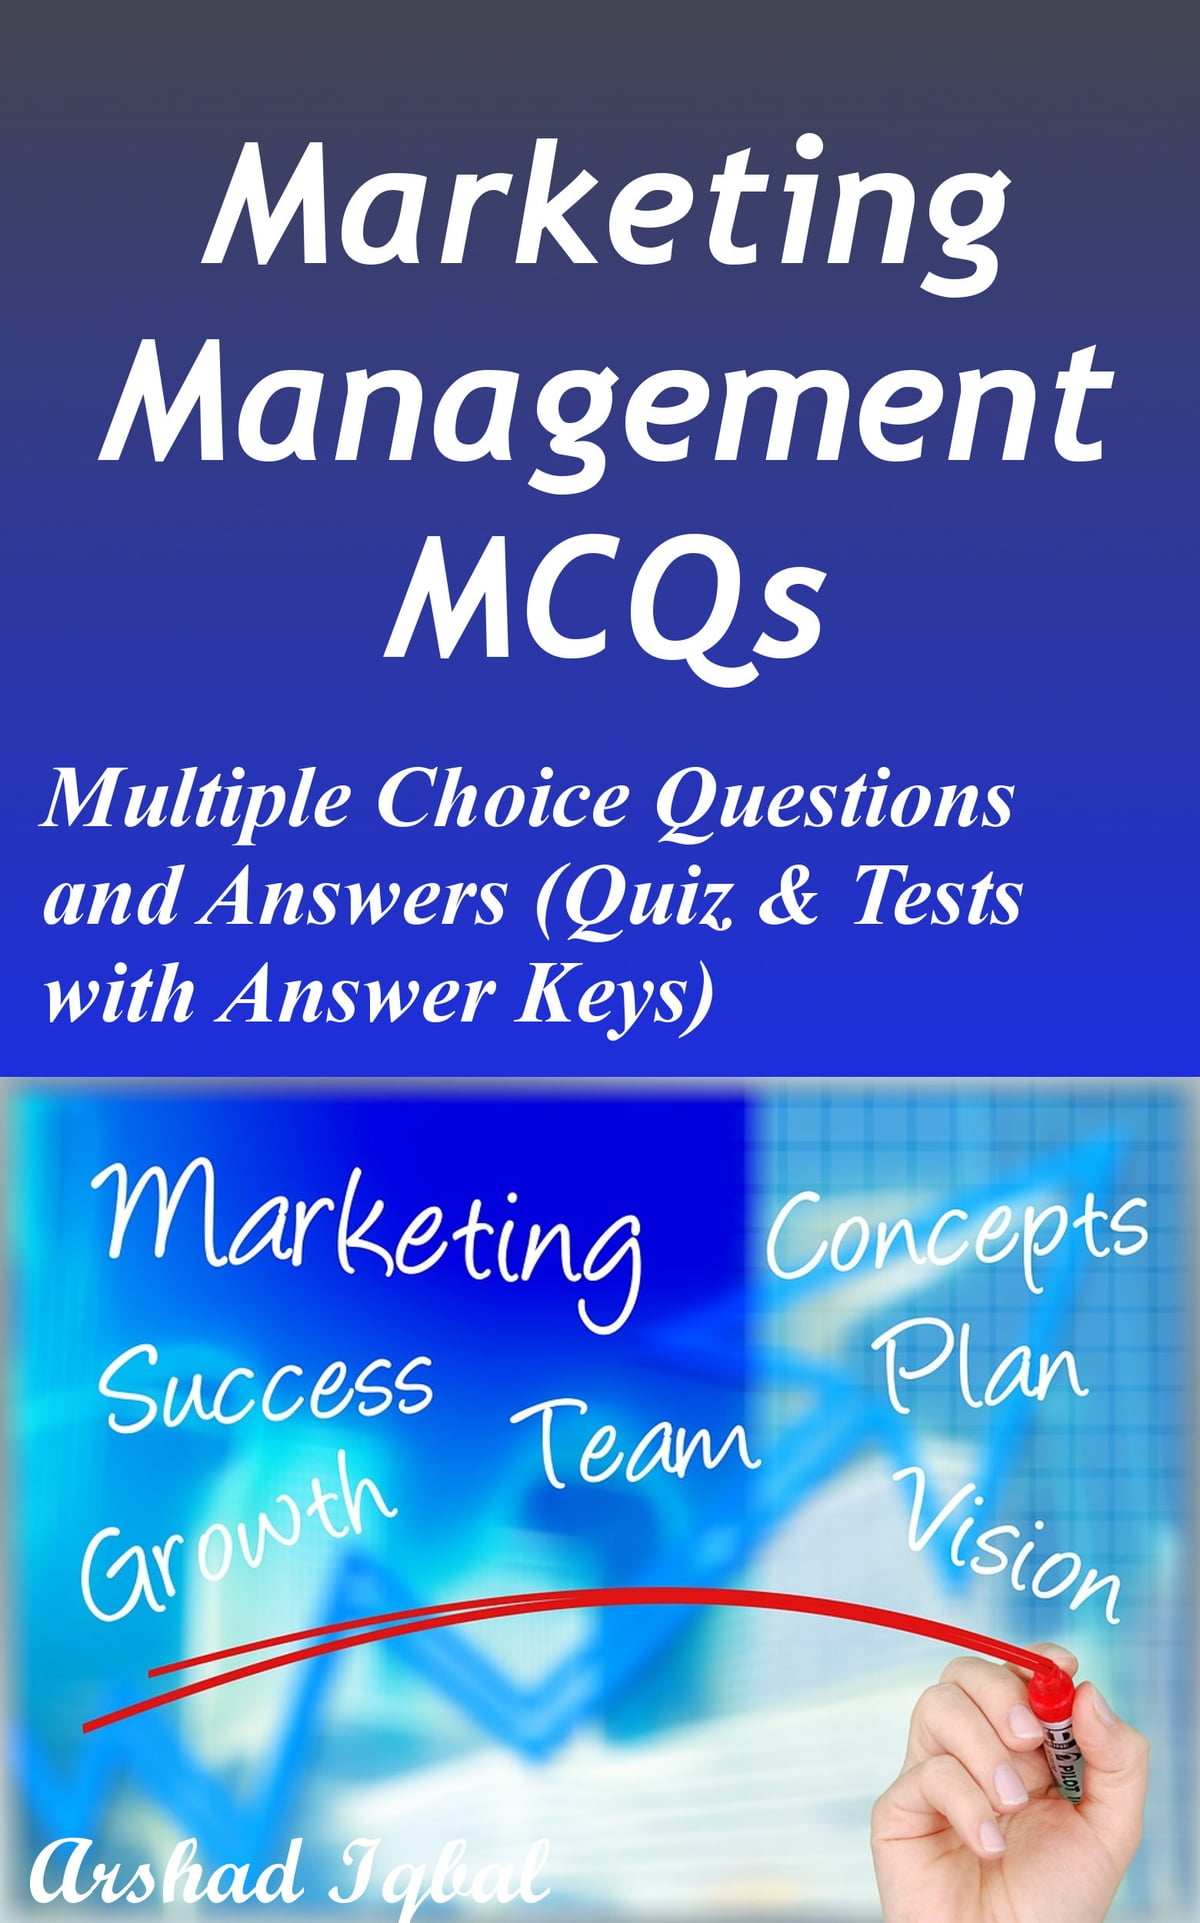 Human resource management mcqs multiple choice questions and marketing management mcqs multiple choice questions and answers quiz tests with answer keys fandeluxe Gallery